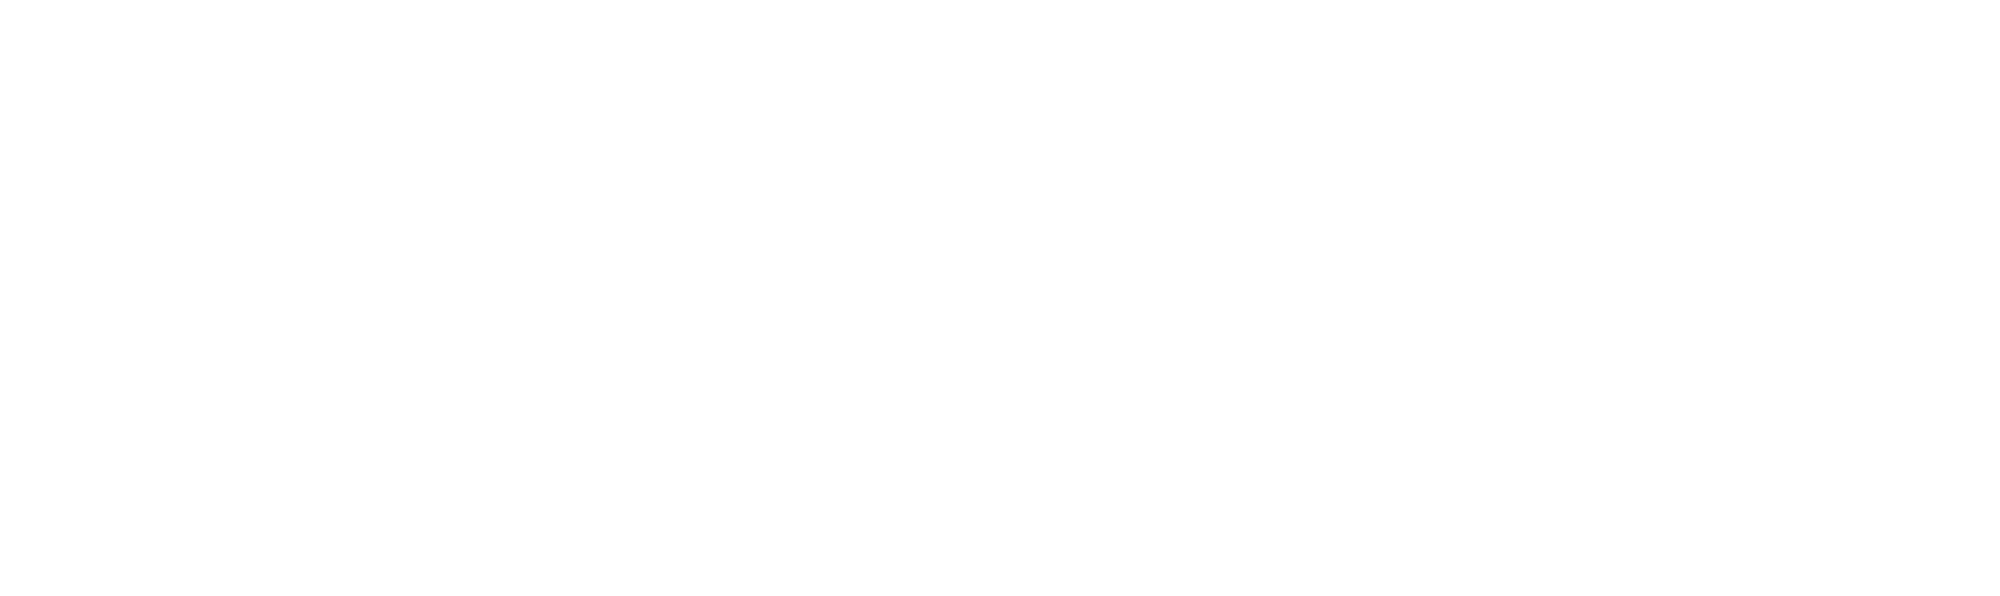 National Test Prep Association Black and White Logo